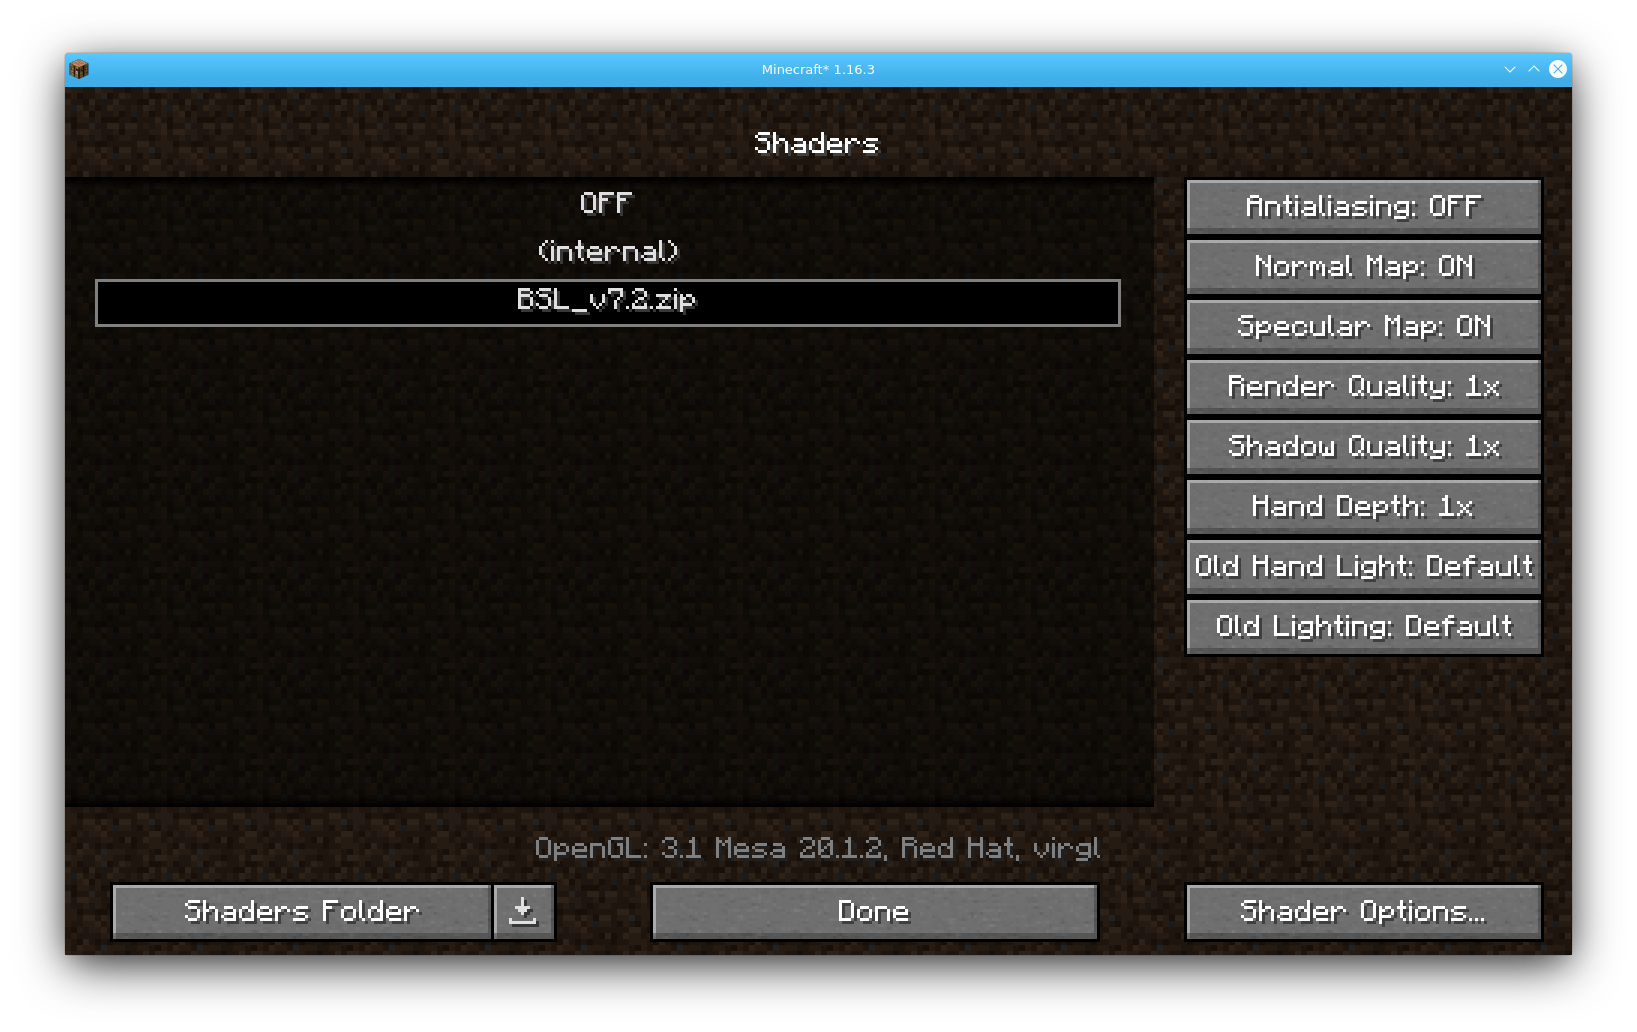 Minecraft Shader Settings